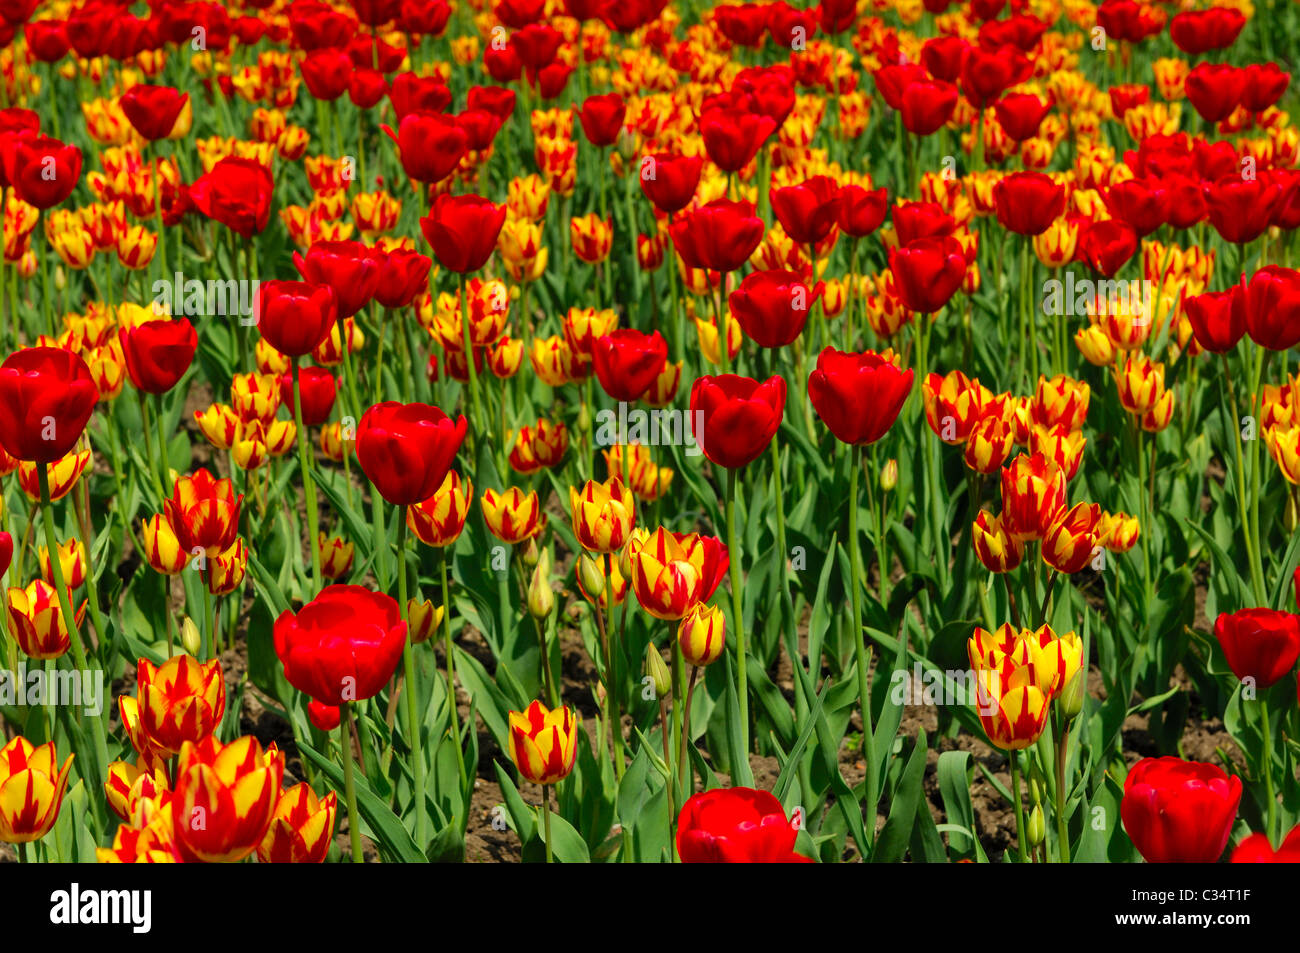 Tulip bed with Red Gorgette und Colour Spectacle varieties, Dutch Tulips - Stock Image